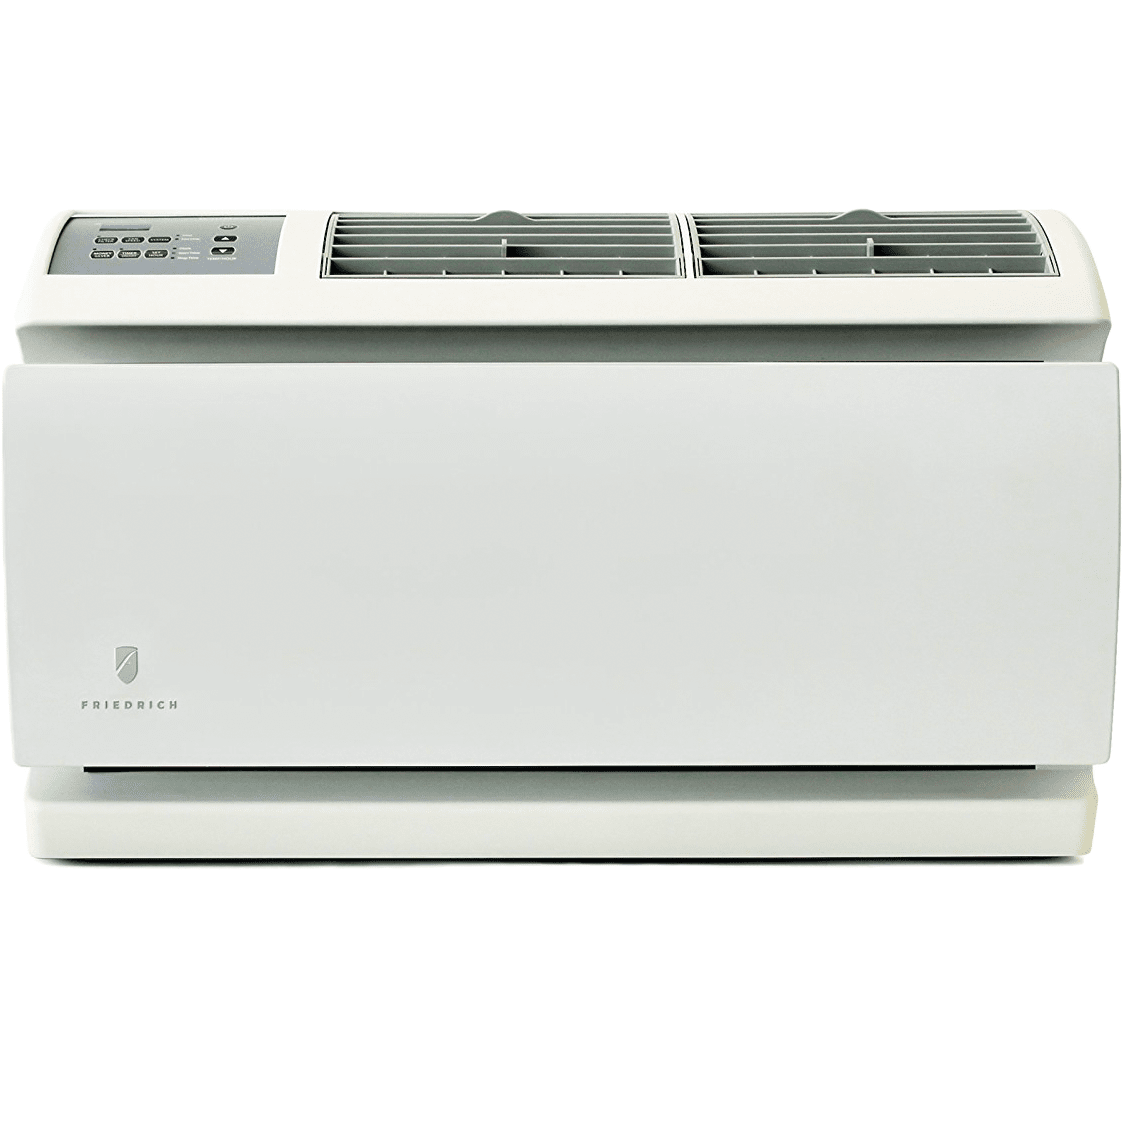 Friedrich Wallmaster WS08D10 8000 BTU Thru-the-Wall Air Conditioner